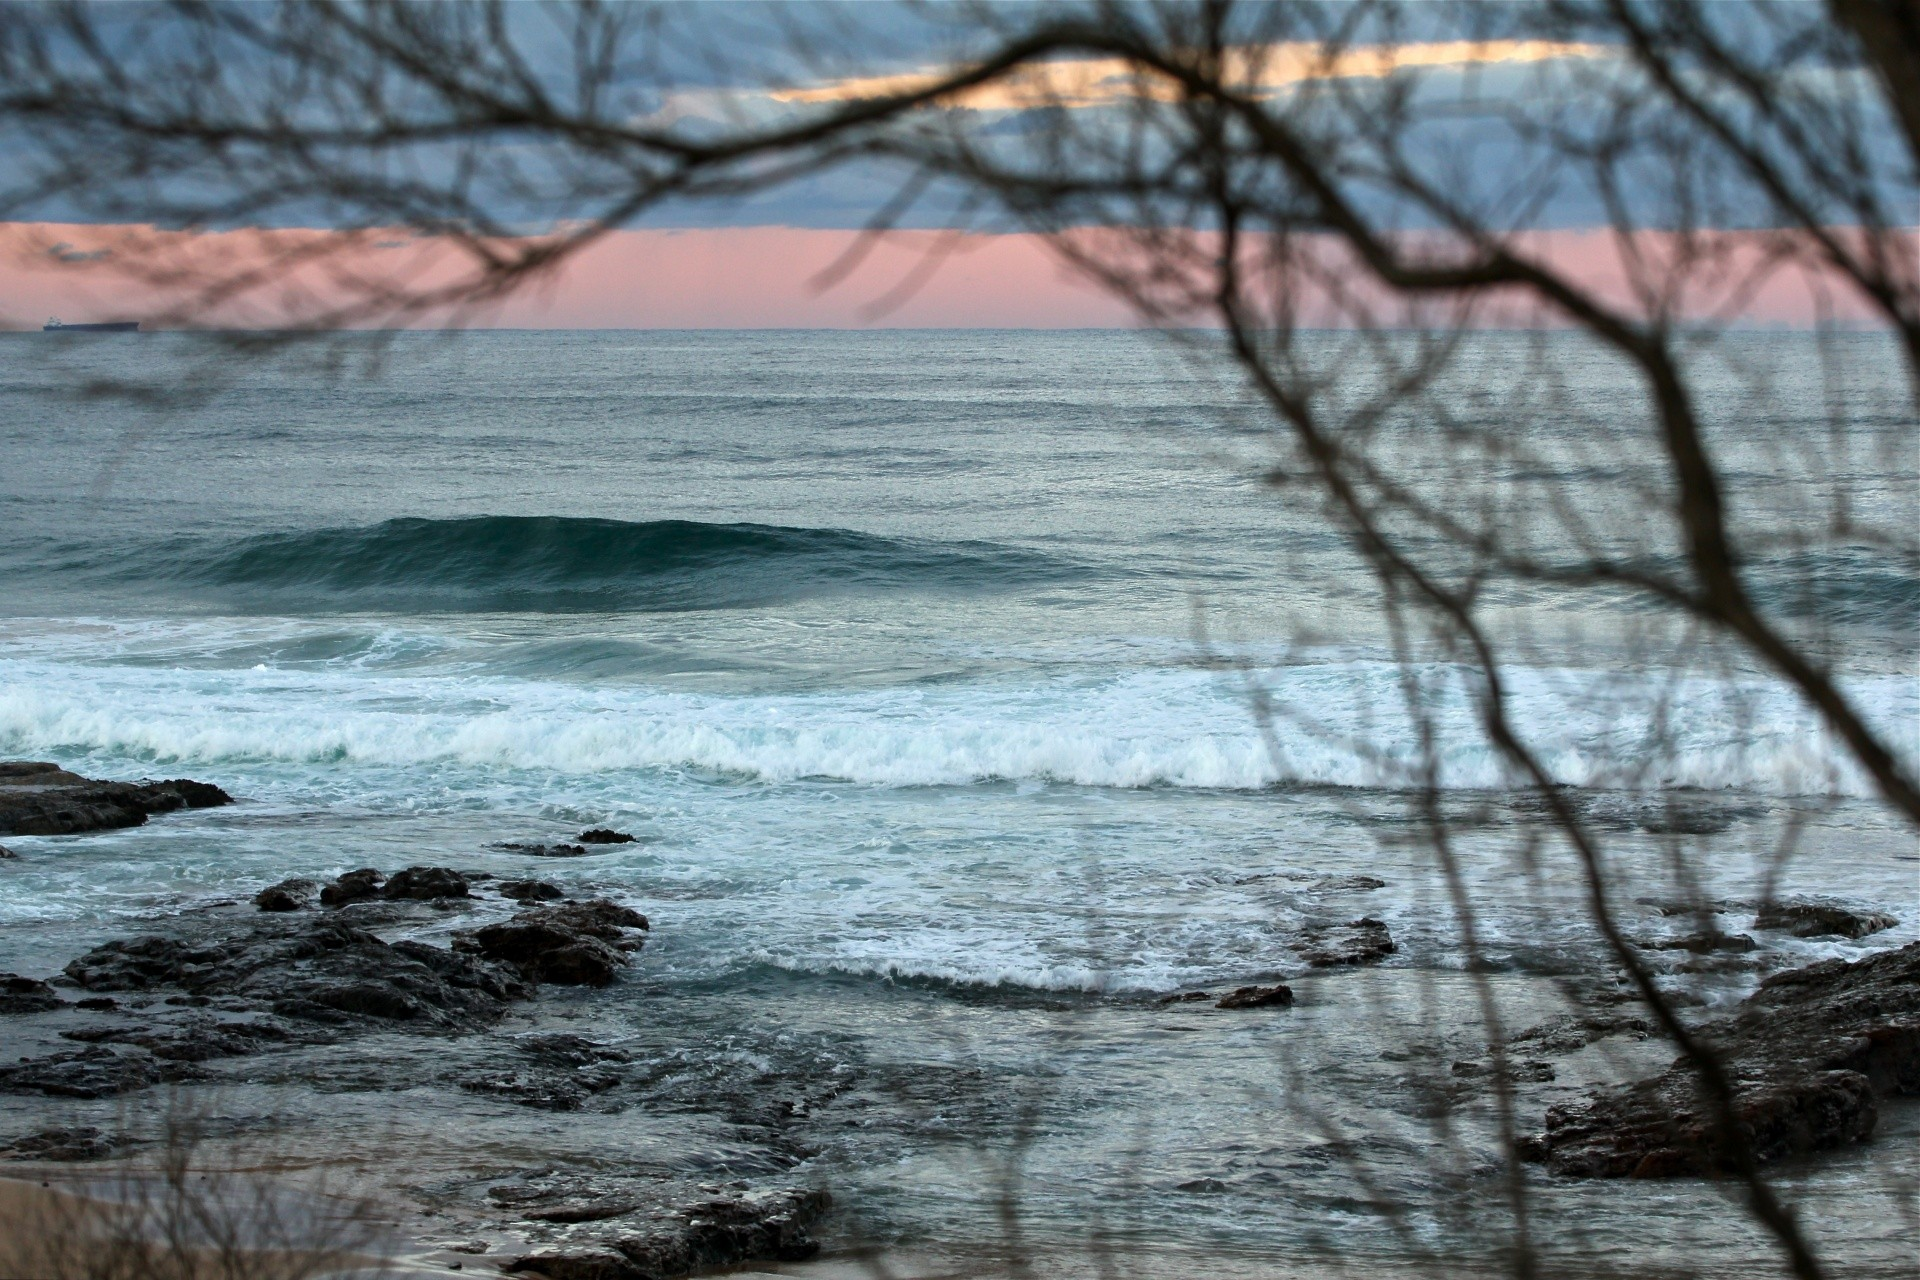 Julie Steele's photo of Wollongong